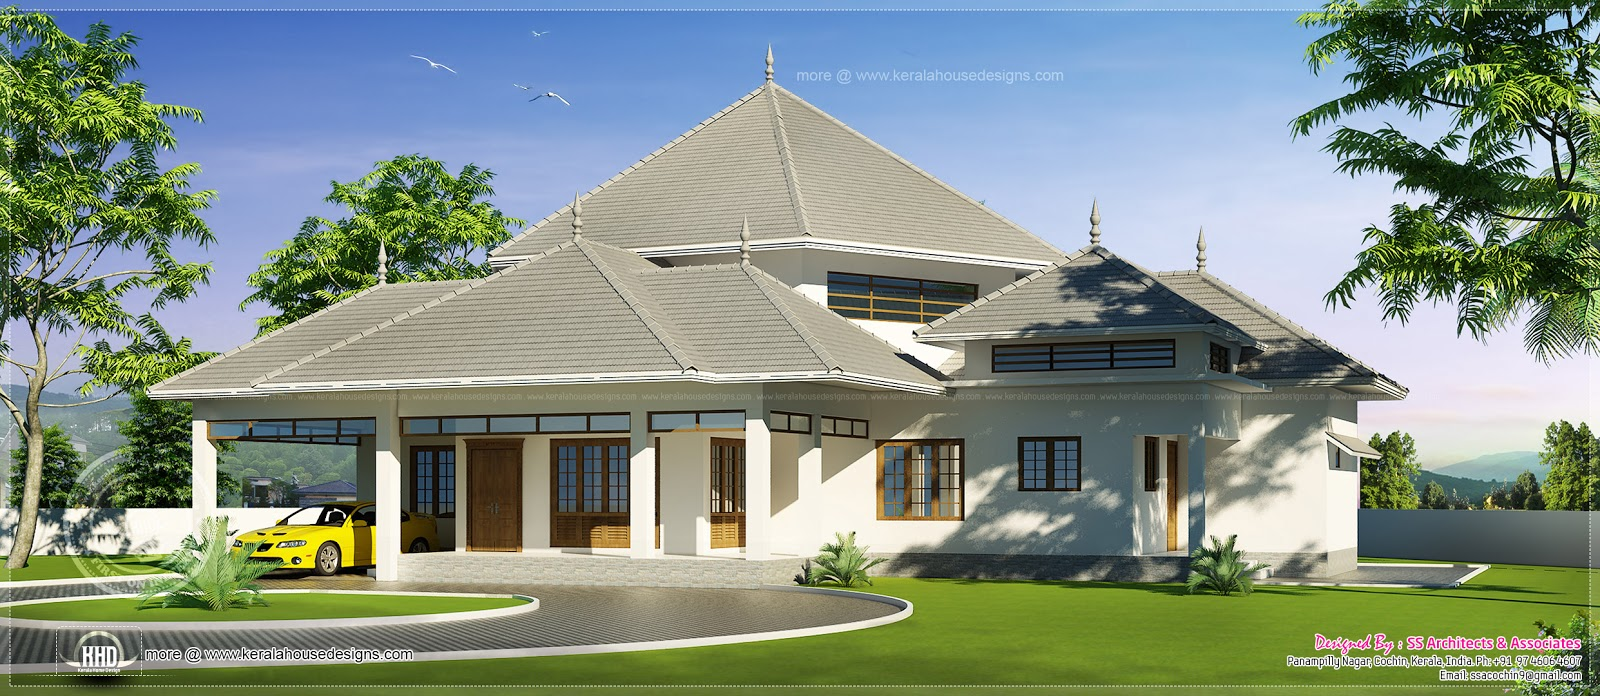 Kerala style modern roof house in 2600 sq feet house design plans